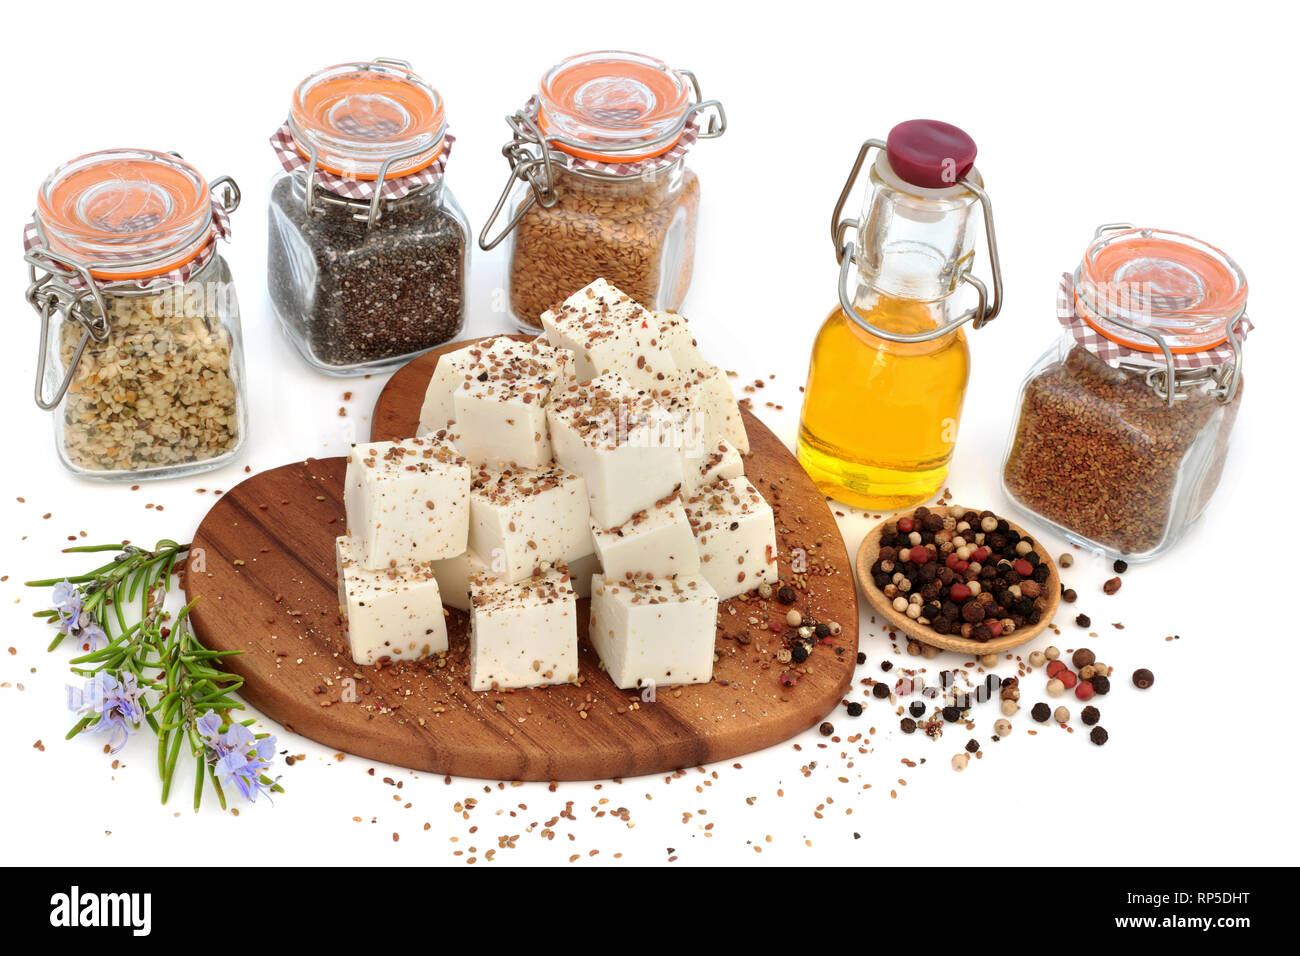 Vegan health food with tofu bean curd dusted with alfalfa seed & ground pepper, with flax, hemp and chia seeds, olive oil, rosemary herb & peppercorns. - Stock Image